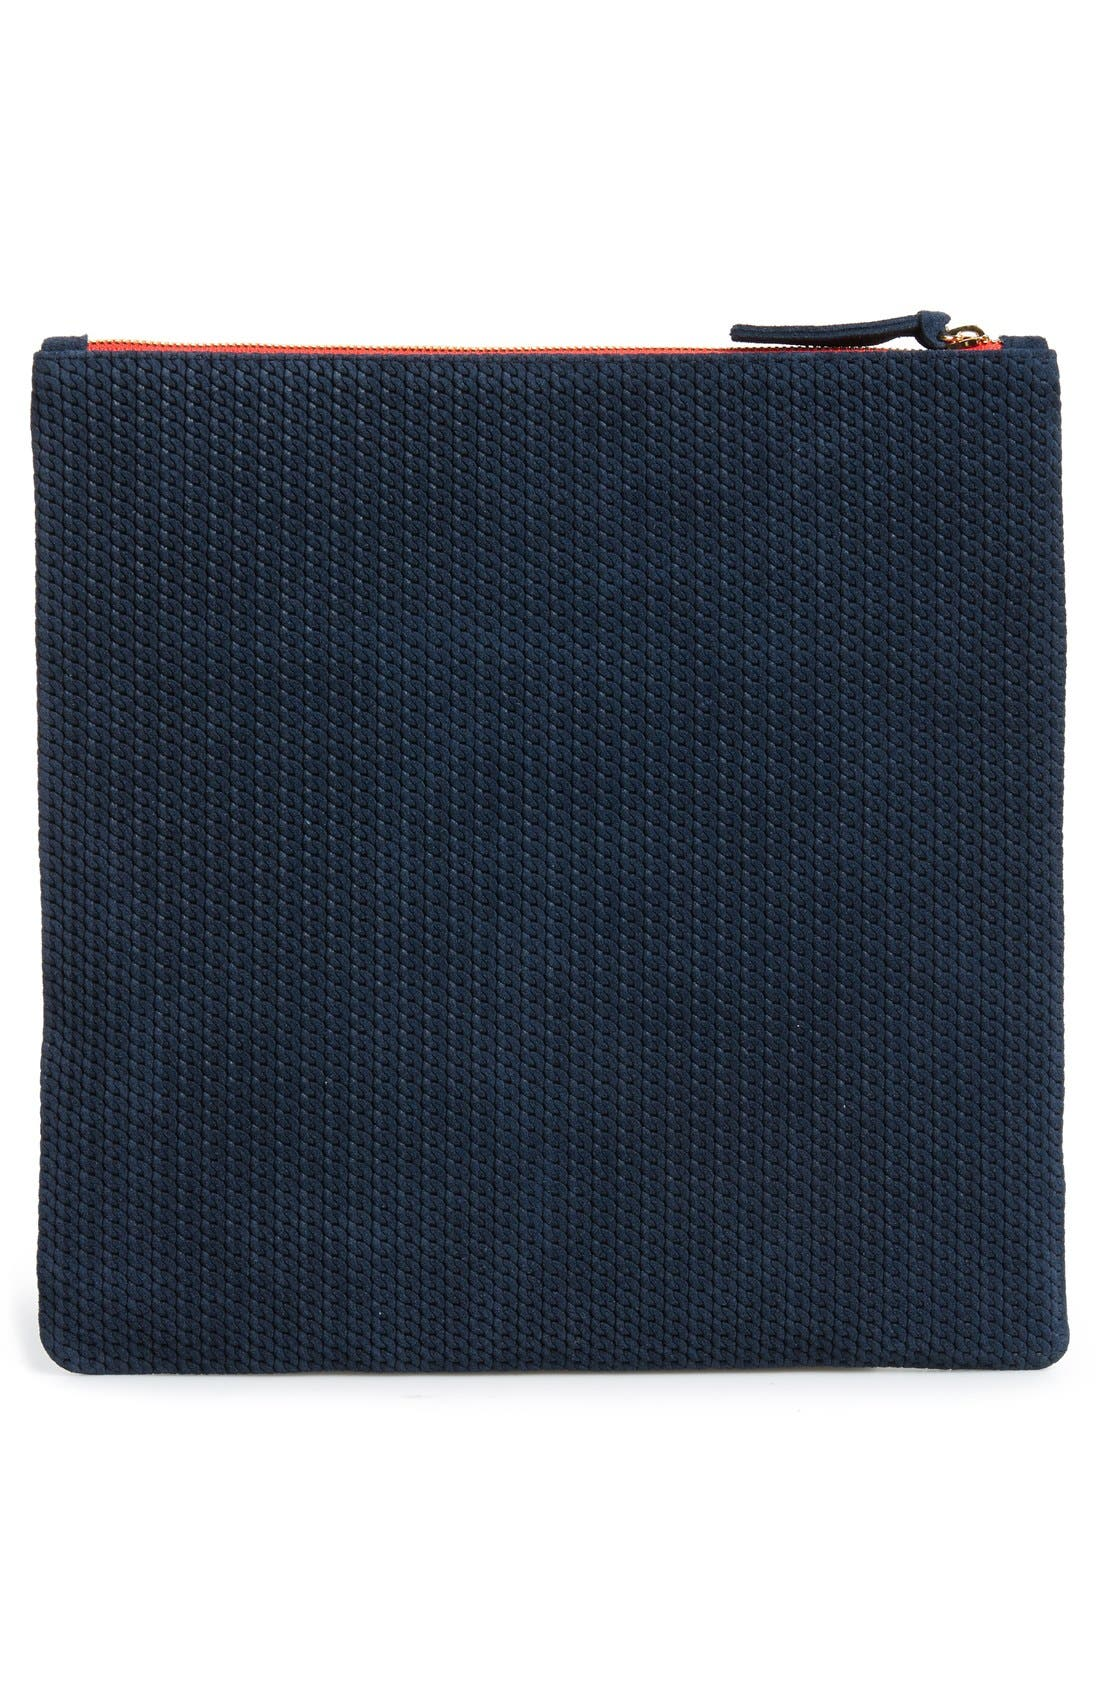 Alternate Image 3  - Clare V. 'Marine Rope' Woven Suede Foldover Clutch